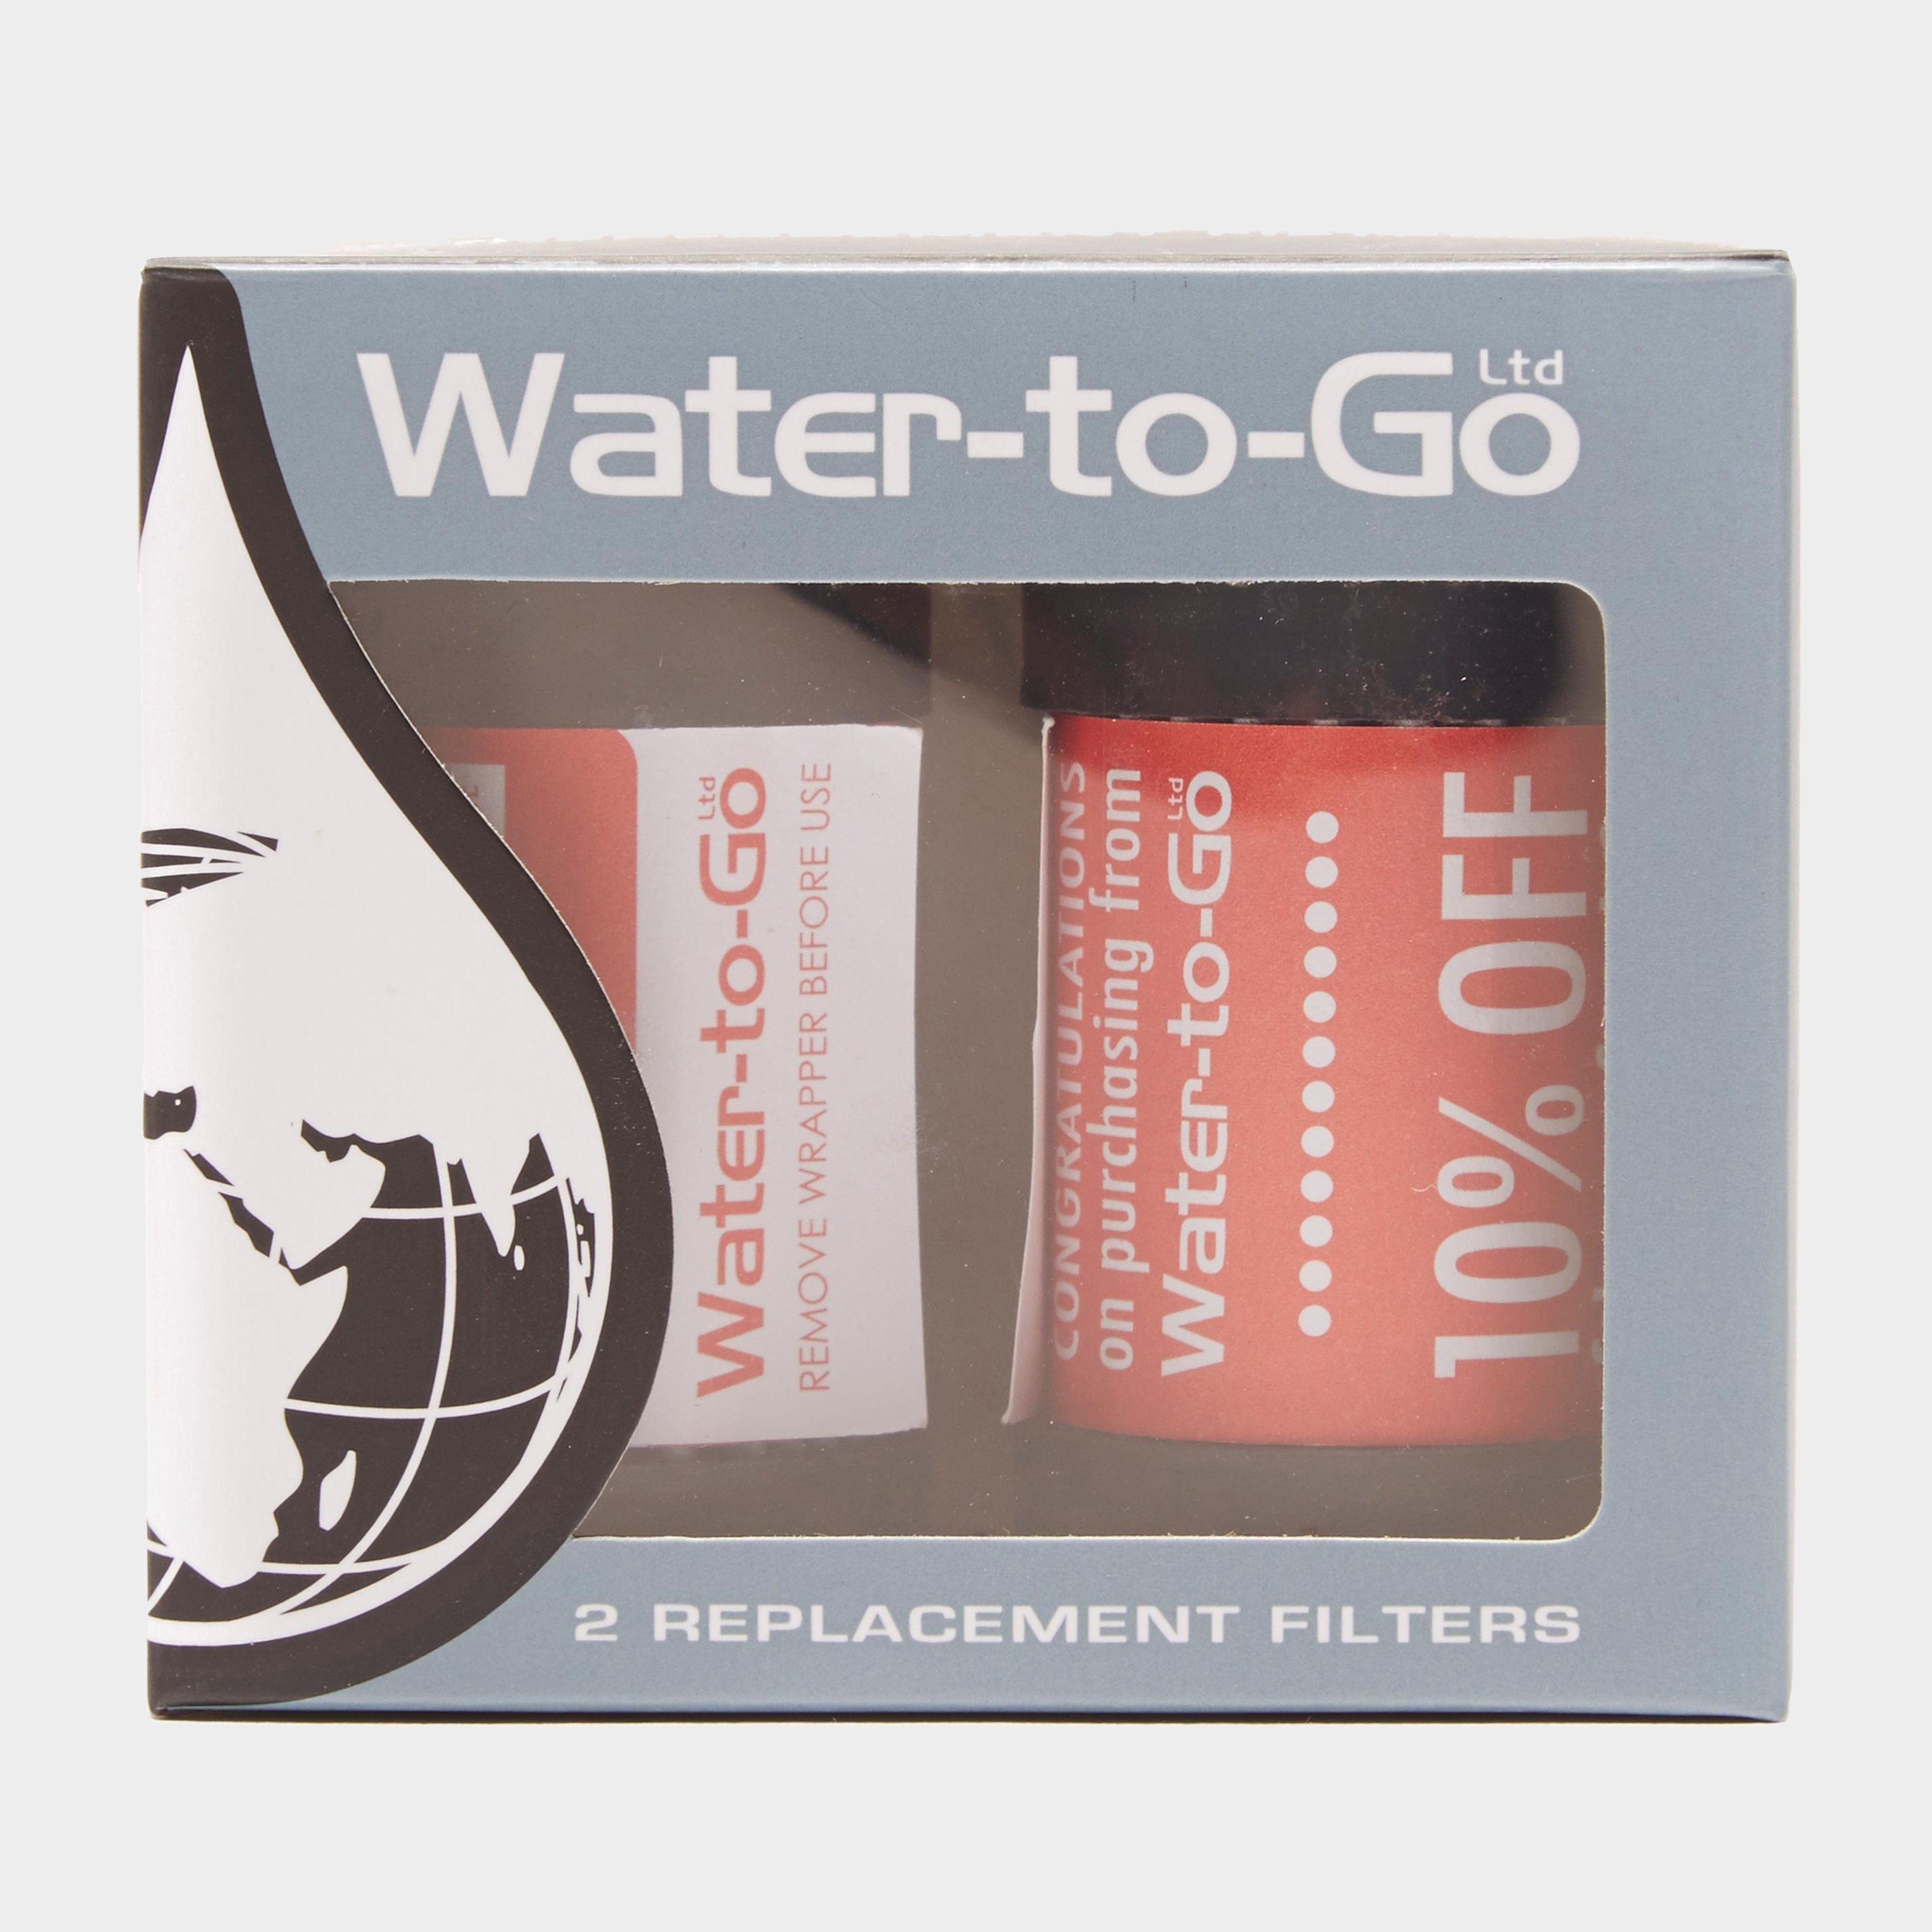 WATER-TO-GO Replacement Filters x 2